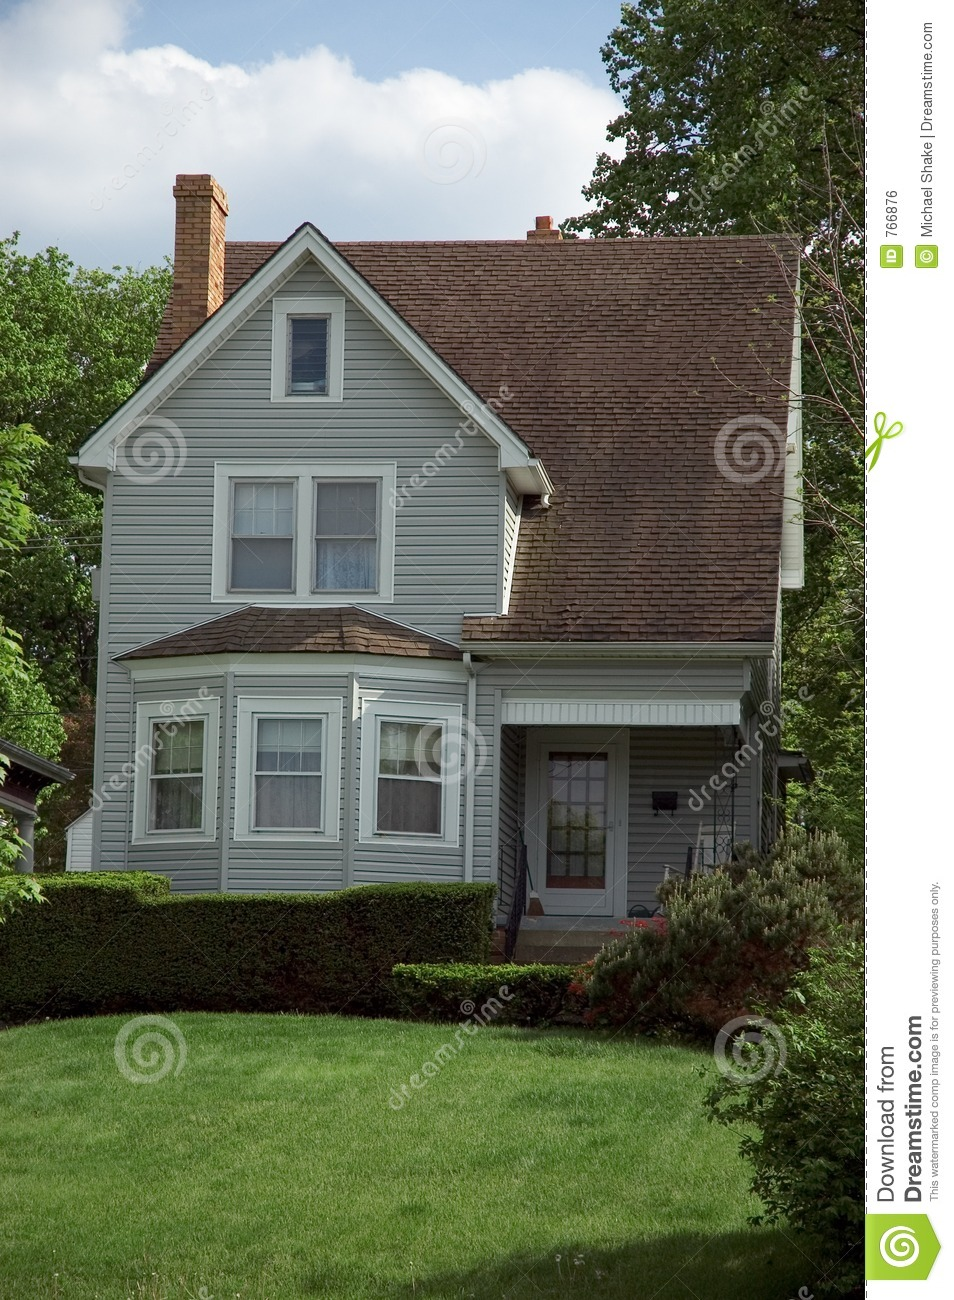 Small Bungalow House Royalty Free Stock Image Image 766876